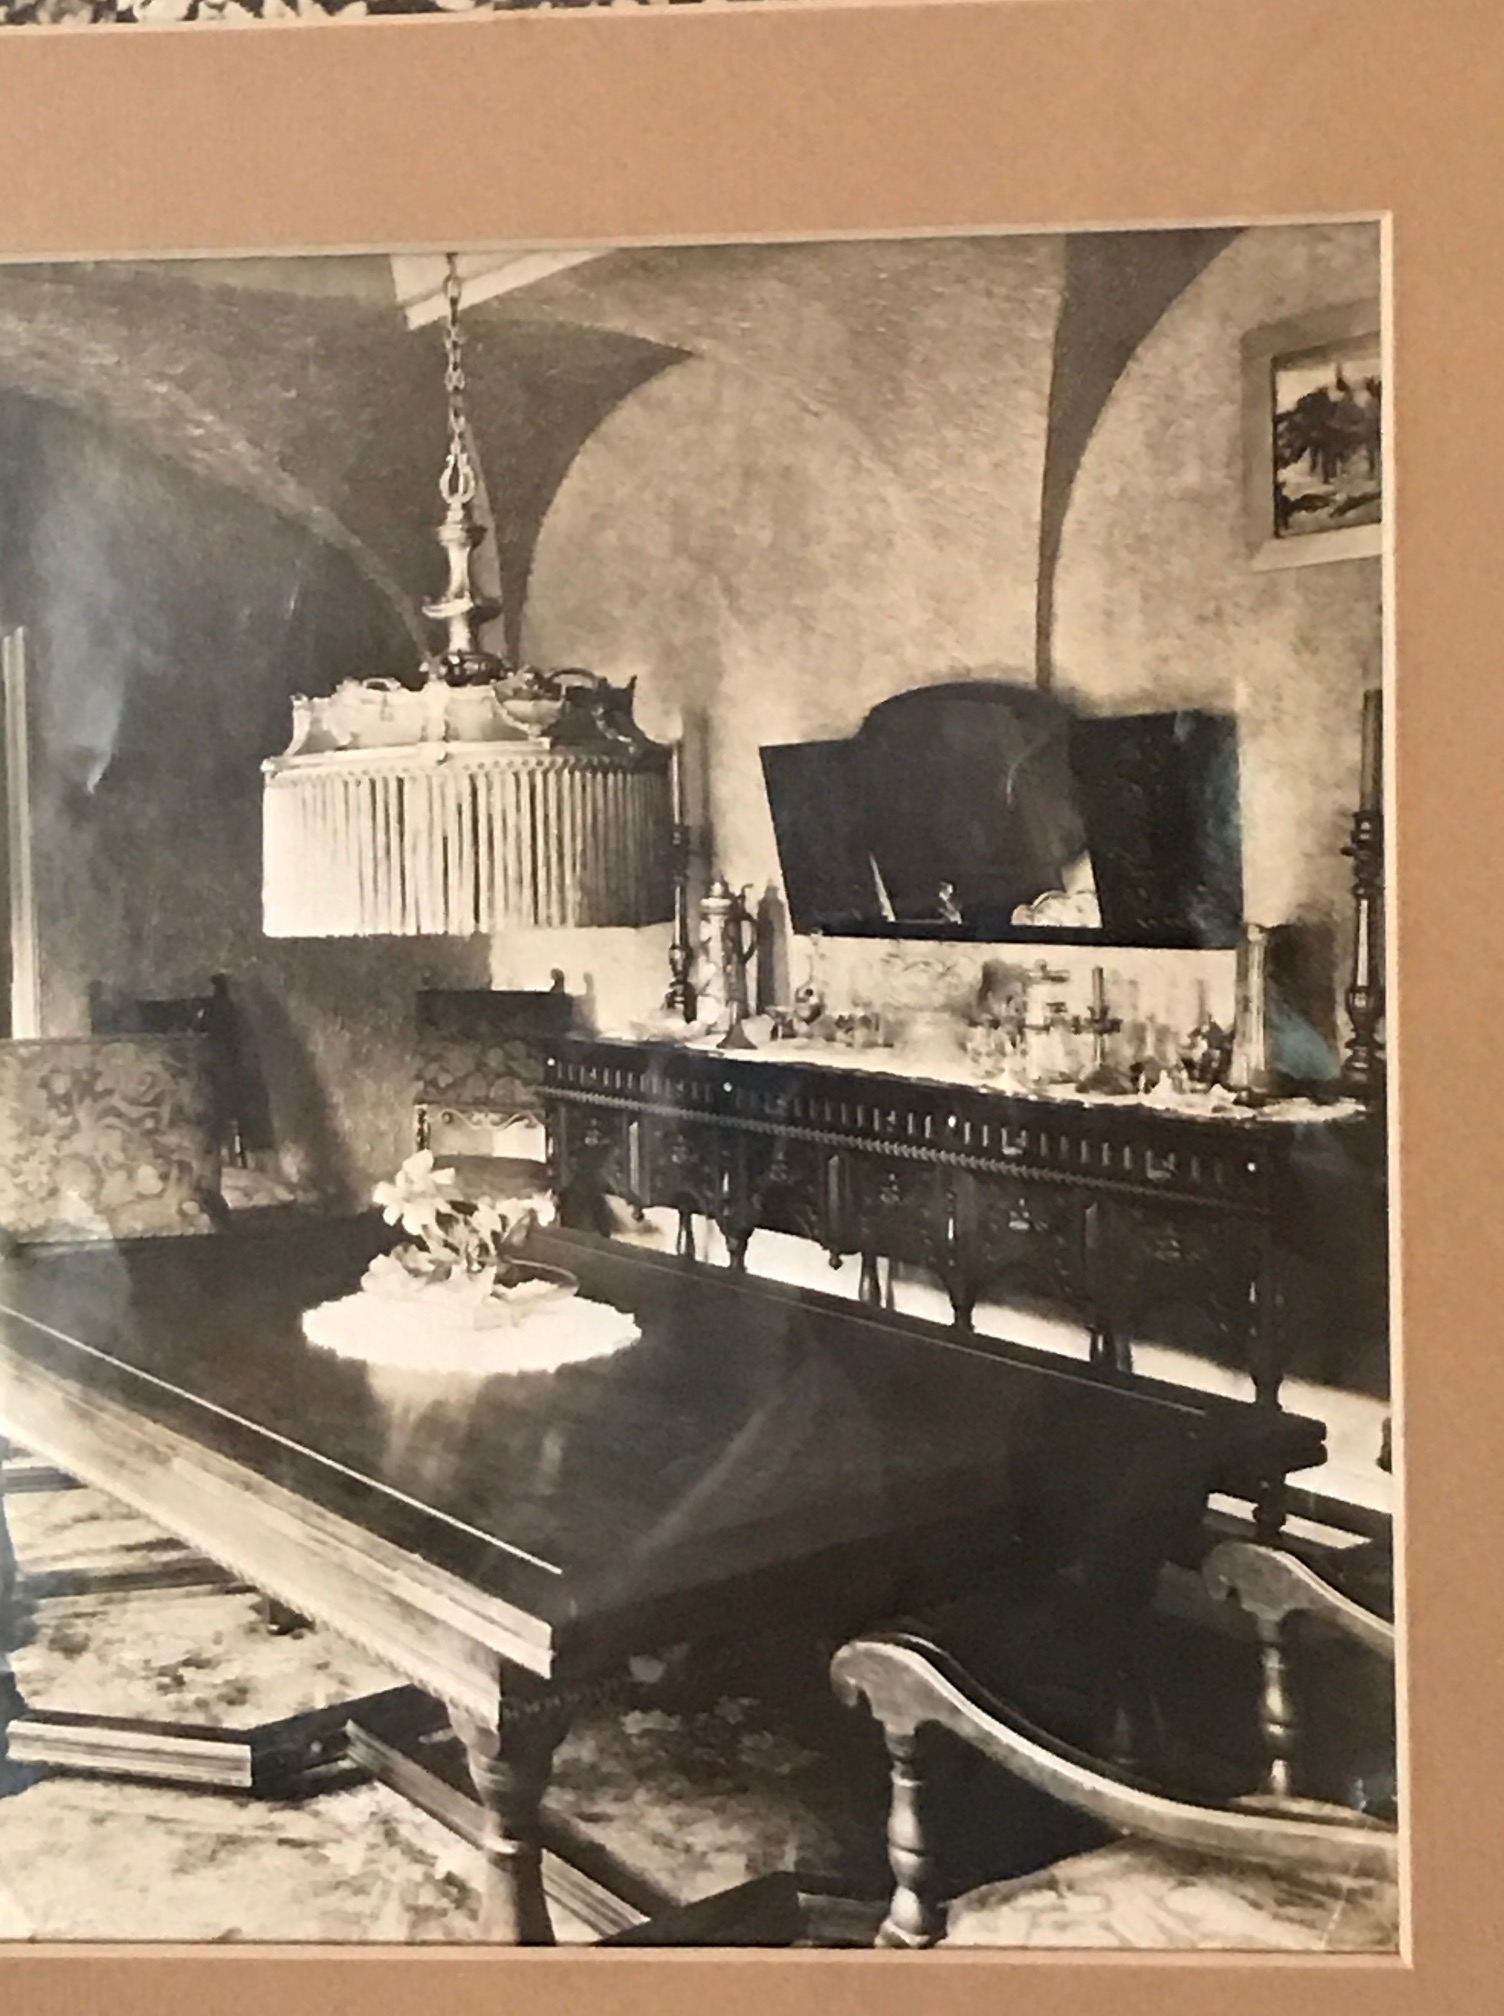 The Dining Room In A Photo Taken By The Famous Photographer George Masa App  1925. Our Thanks To Anne And Nancy Chiles For This Photo.